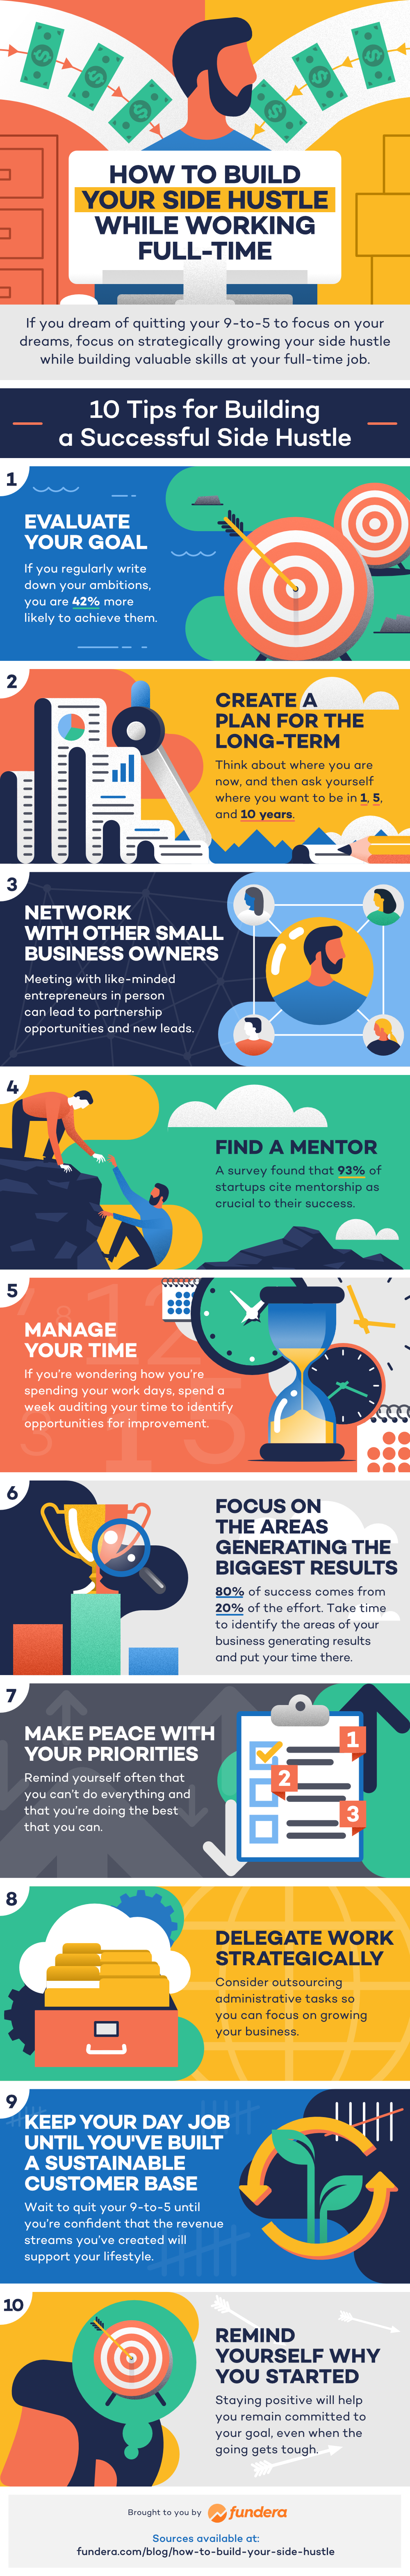 How to Build Your Side Hustle While Working Full-time